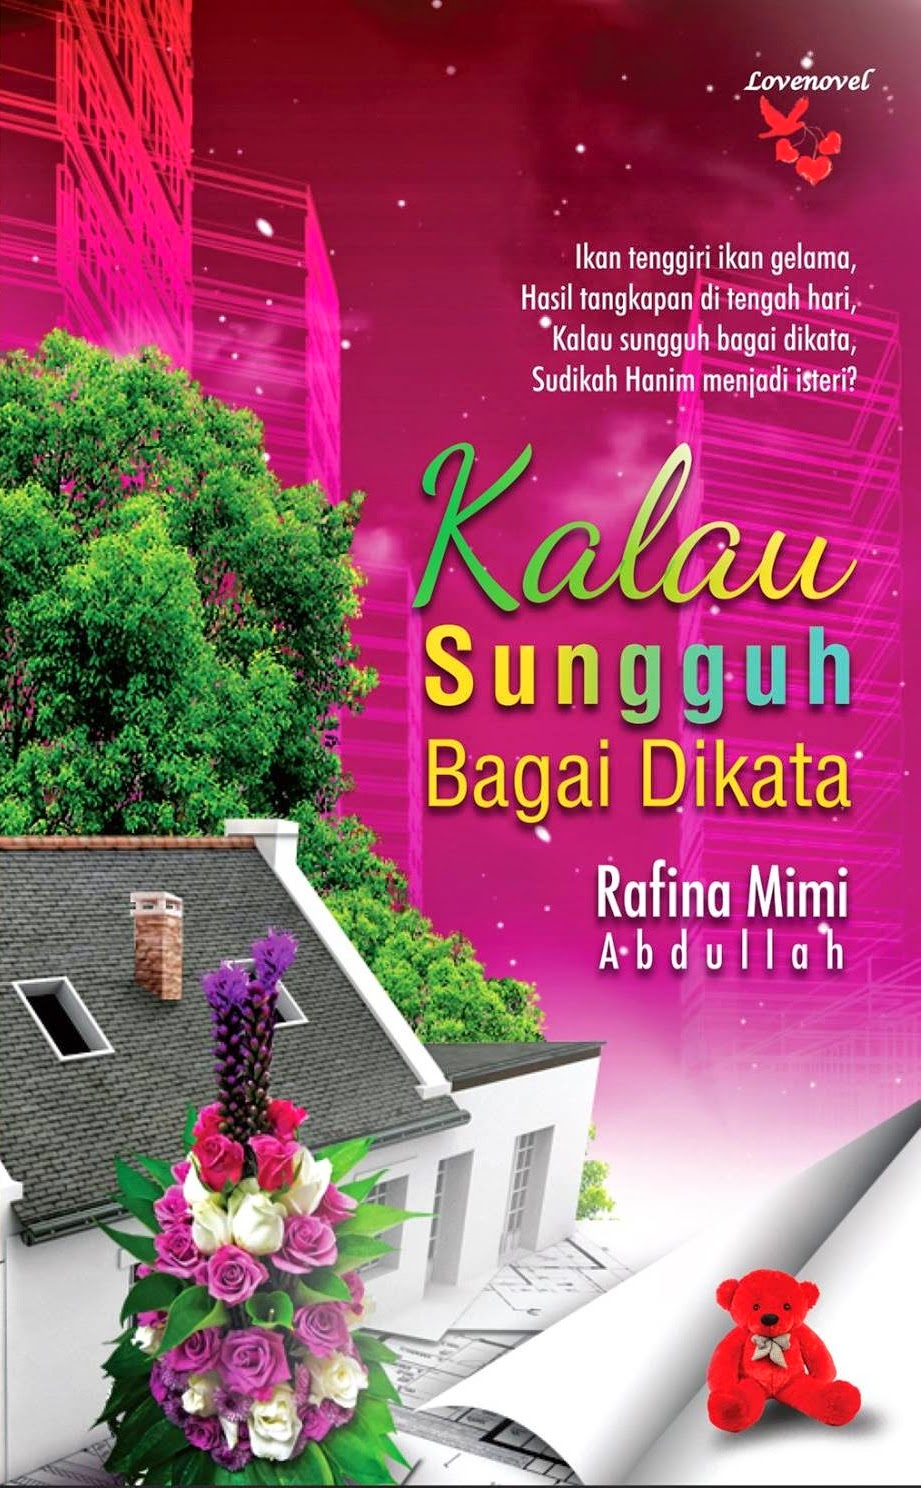 Novel Ke empat 2014